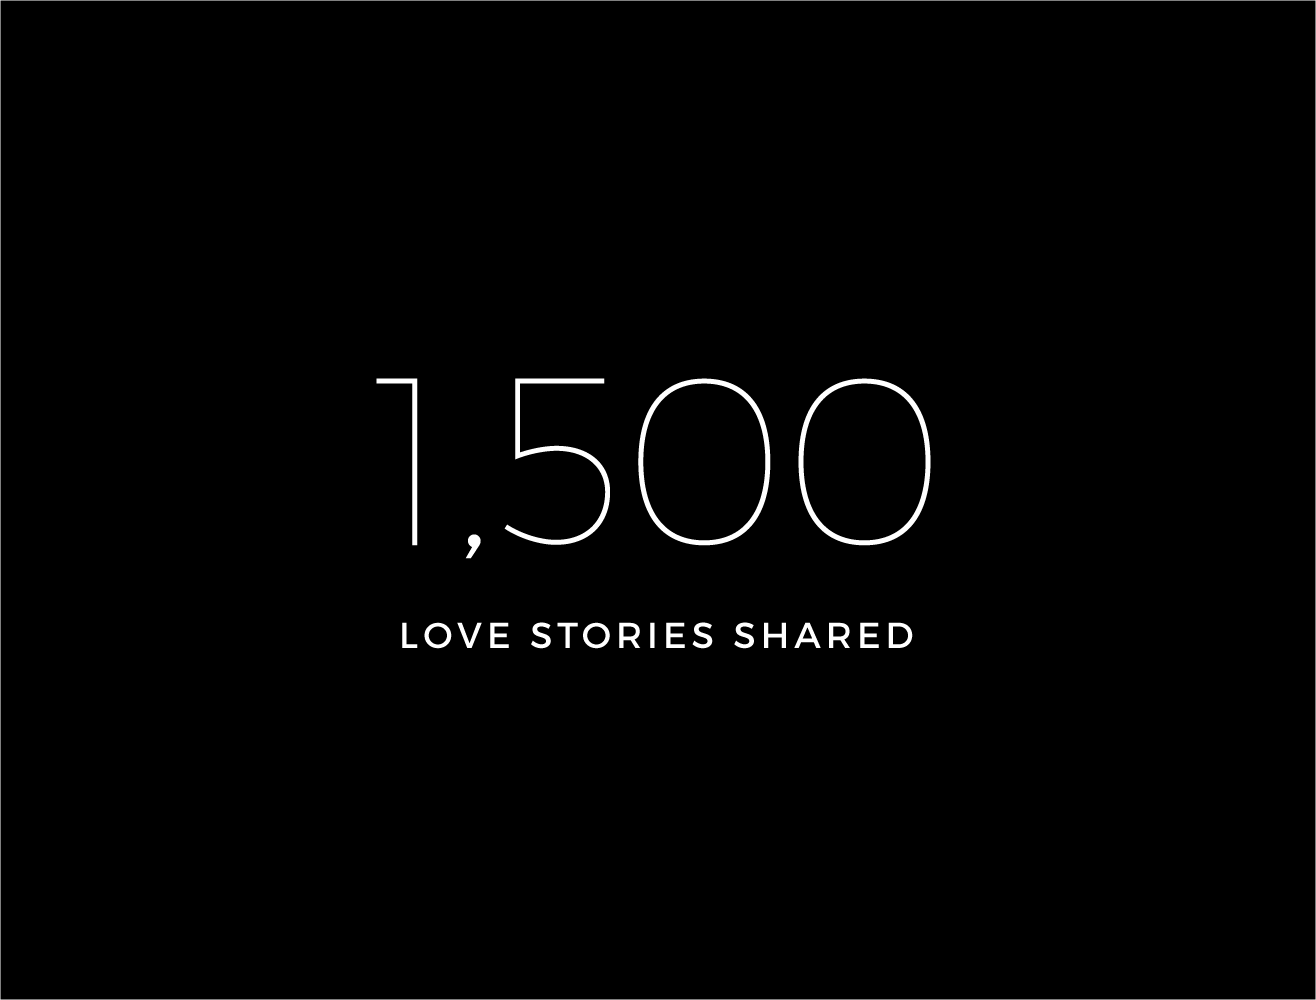 1,500 love stories shared